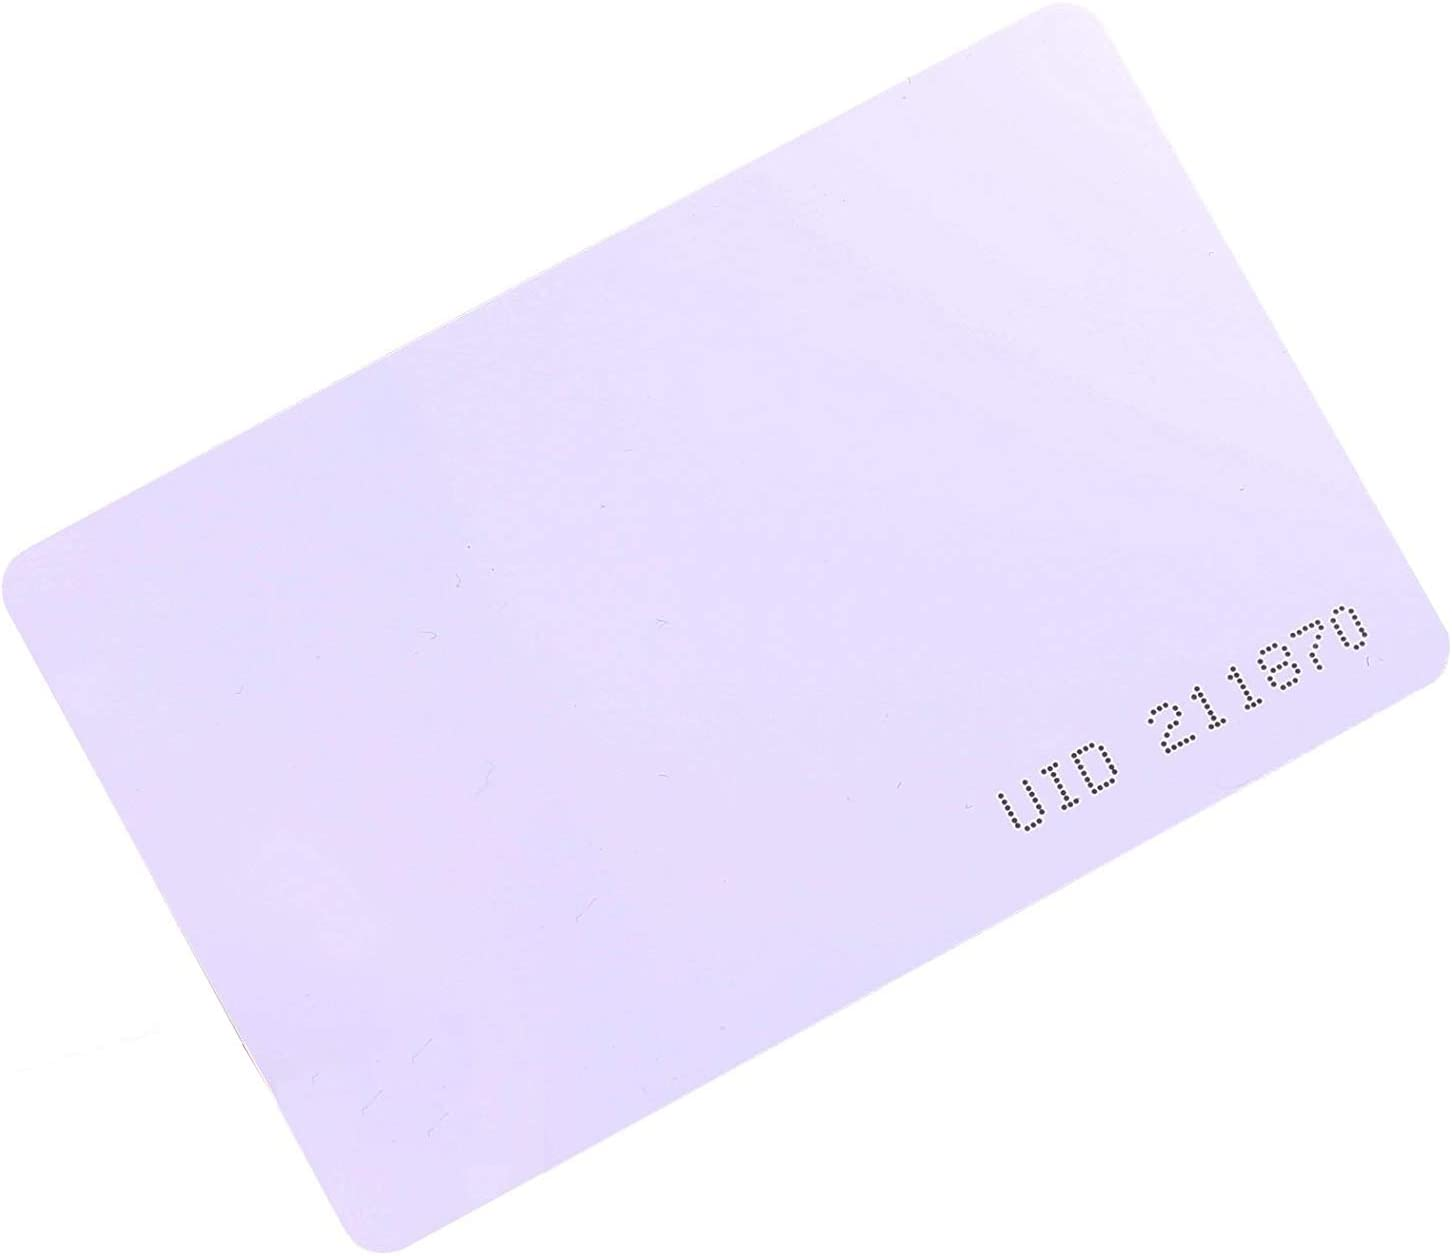 Pack of 10 UHPPOTE UID RFIC Card Writable Rewritable Programable MF1 IC 13.56Mhz S50